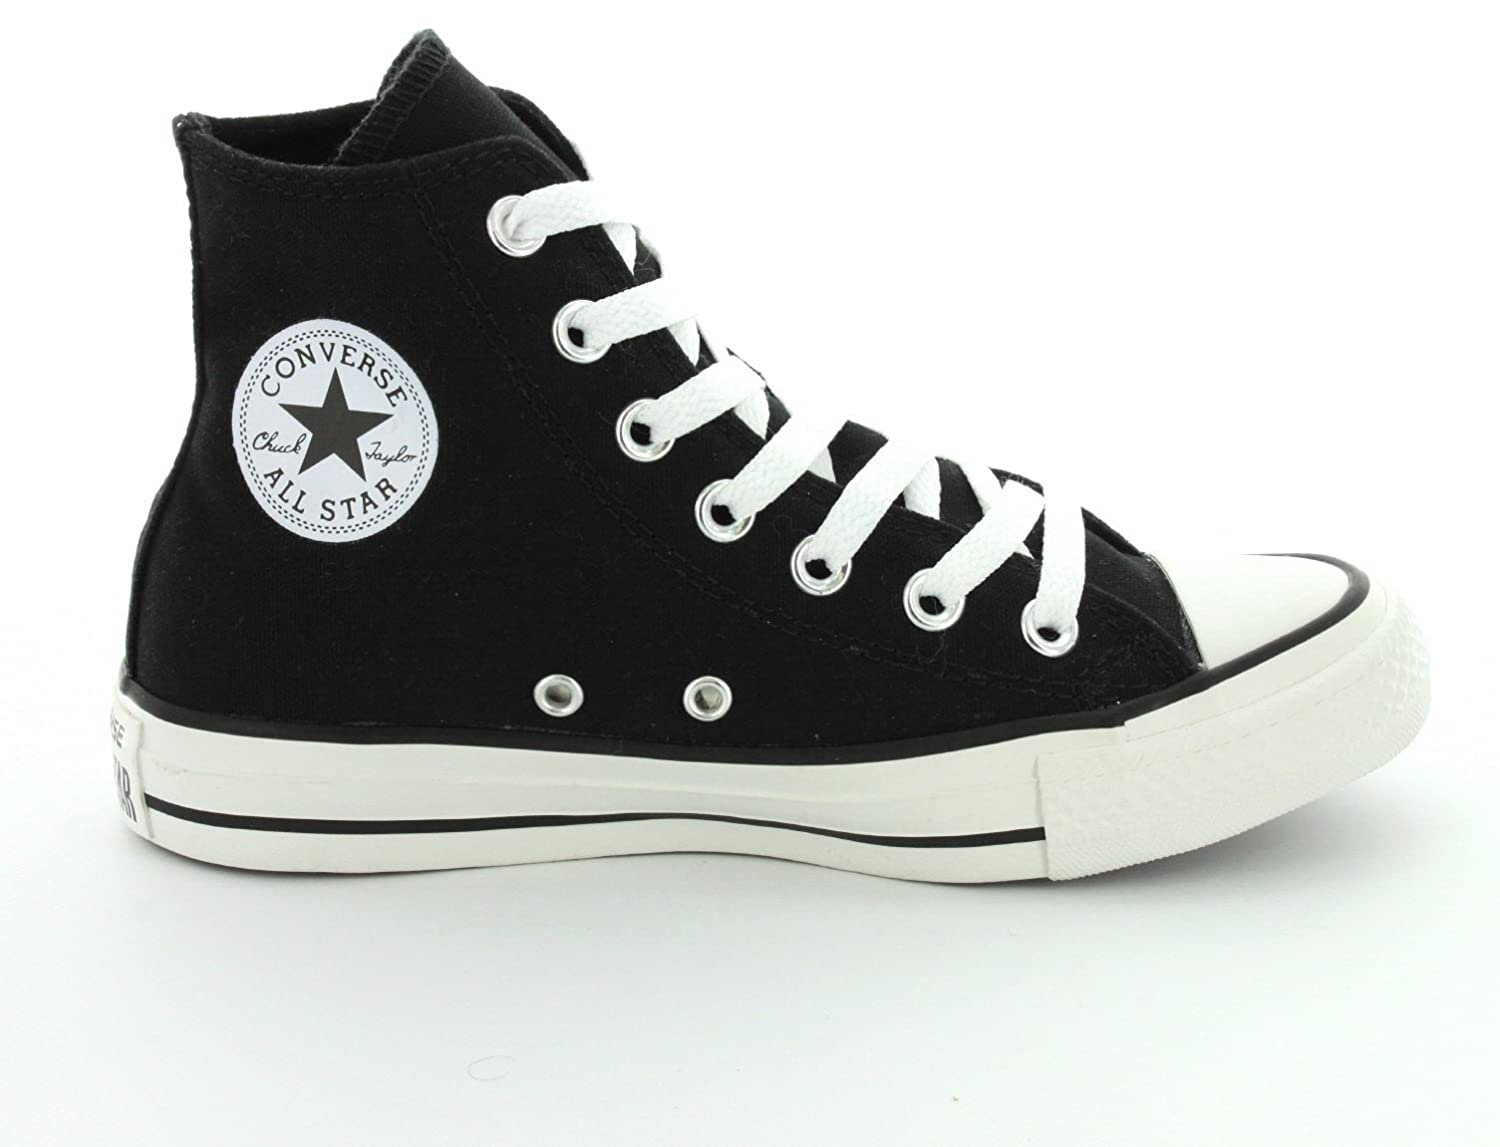 converse shoes black and white font designer software